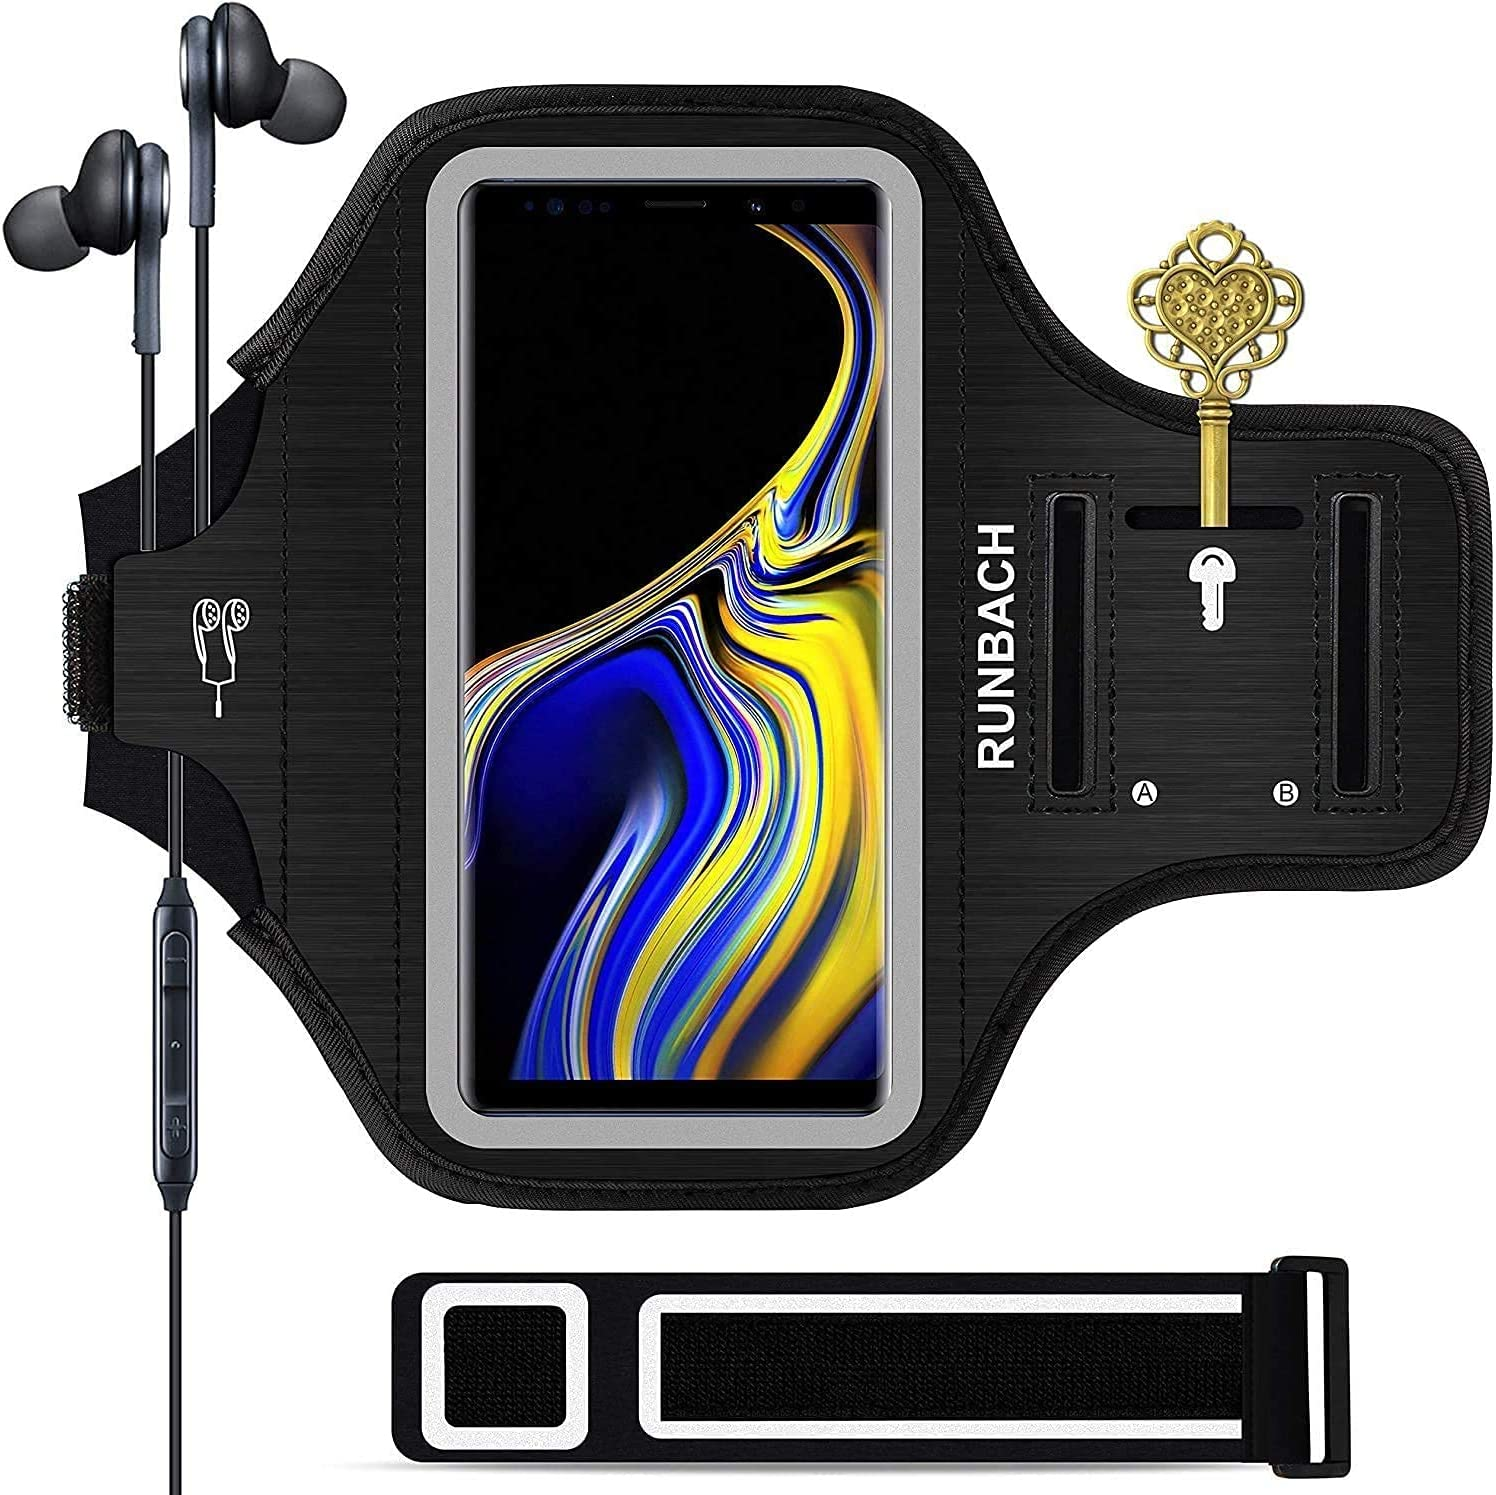 Galaxy Note 20/10+/9/8 Armband,RUNBACH Sweatproof Running Exercise Cellphone Sportband Bag with Fingerprint Touch and Card Slot for Samsung Galaxy Note 20/Note 10+/Note 9/Note 8(Black)